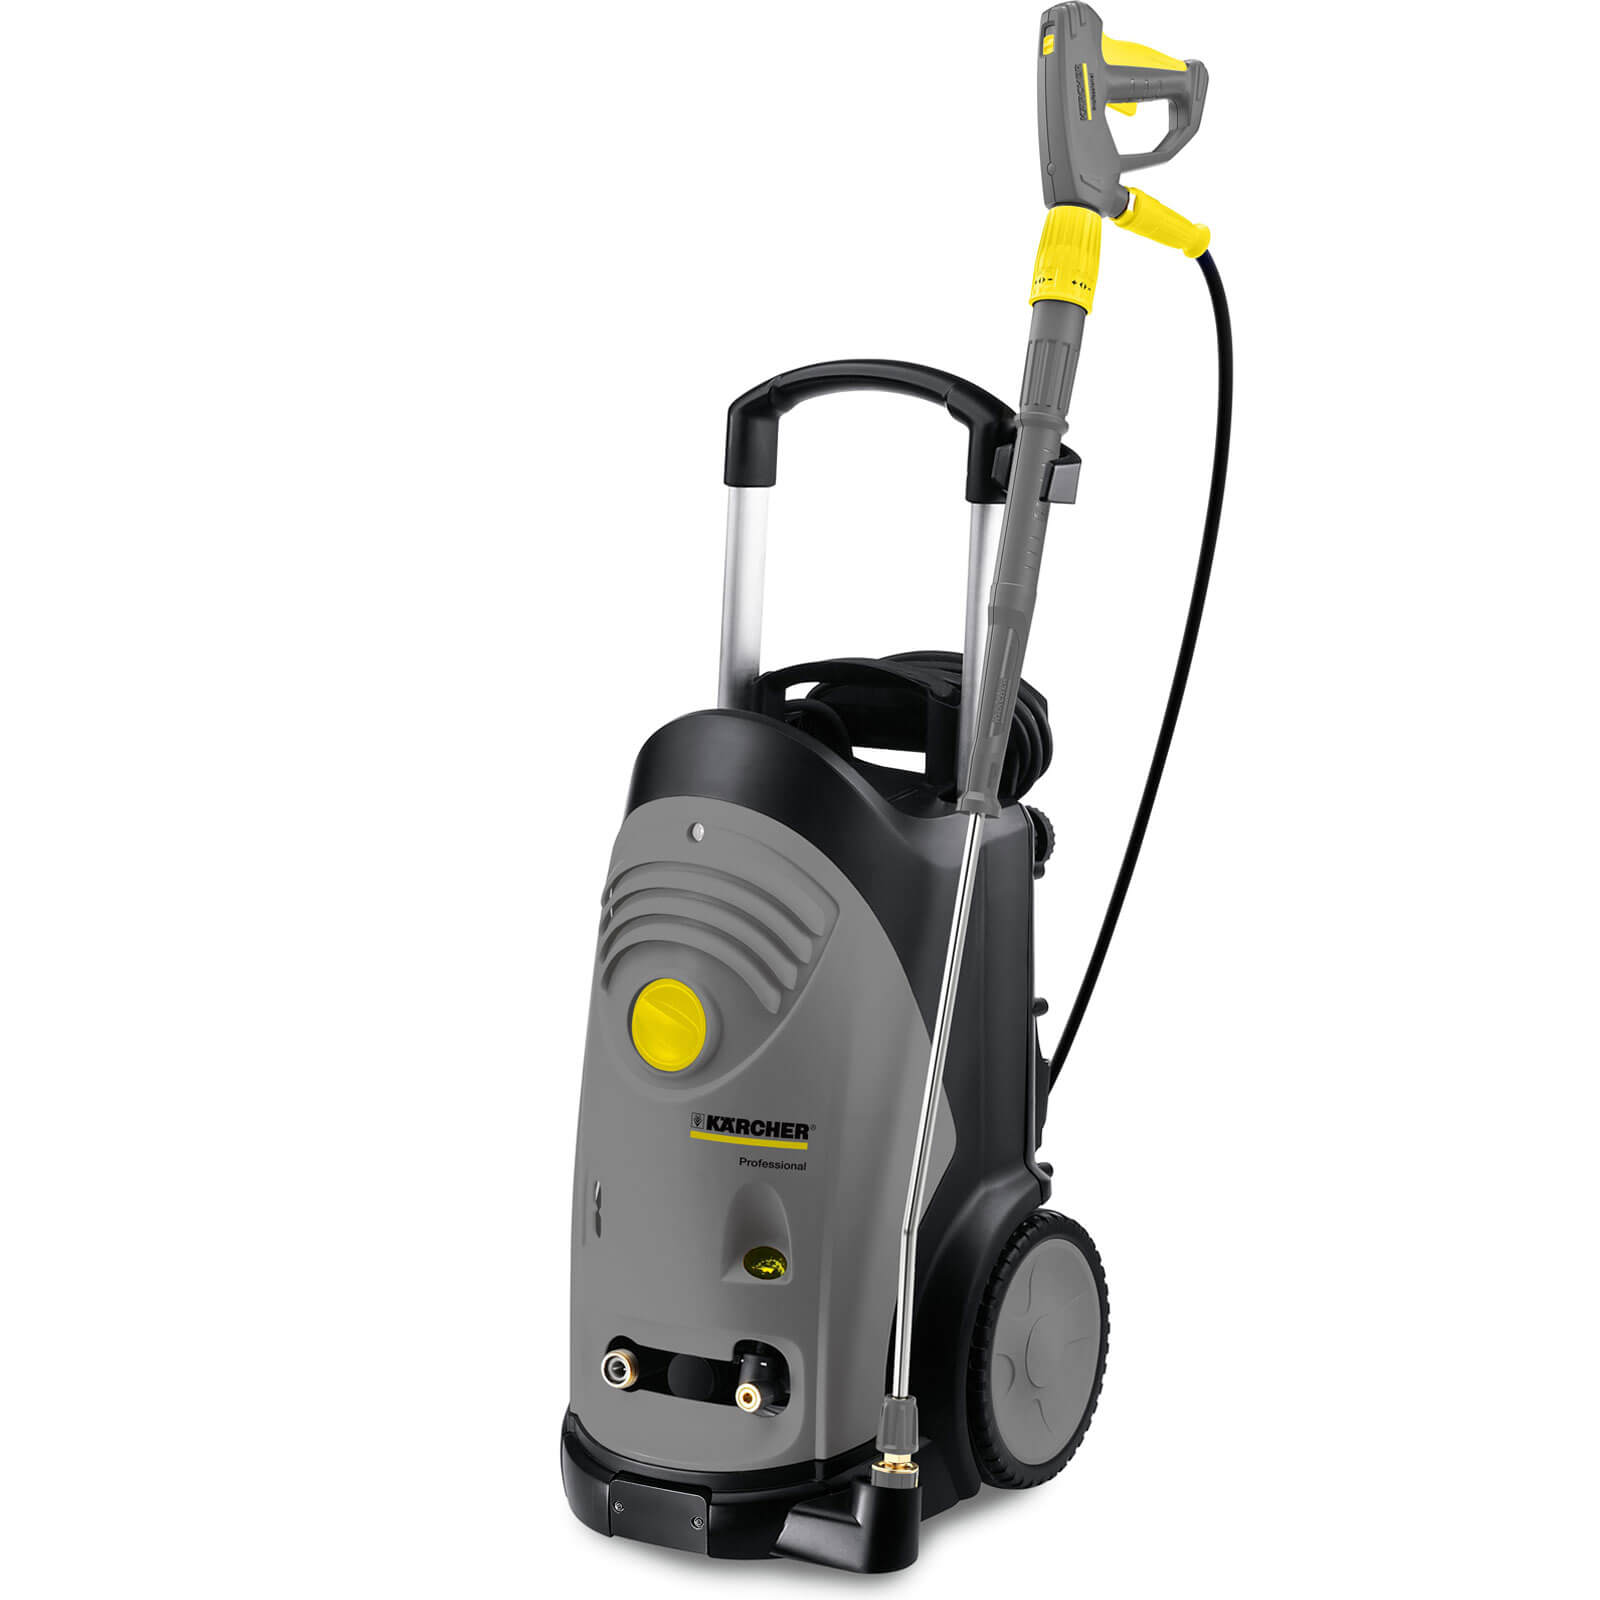 karcher hd 6 11 4 m plus professional pressure washer 140 bar. Black Bedroom Furniture Sets. Home Design Ideas